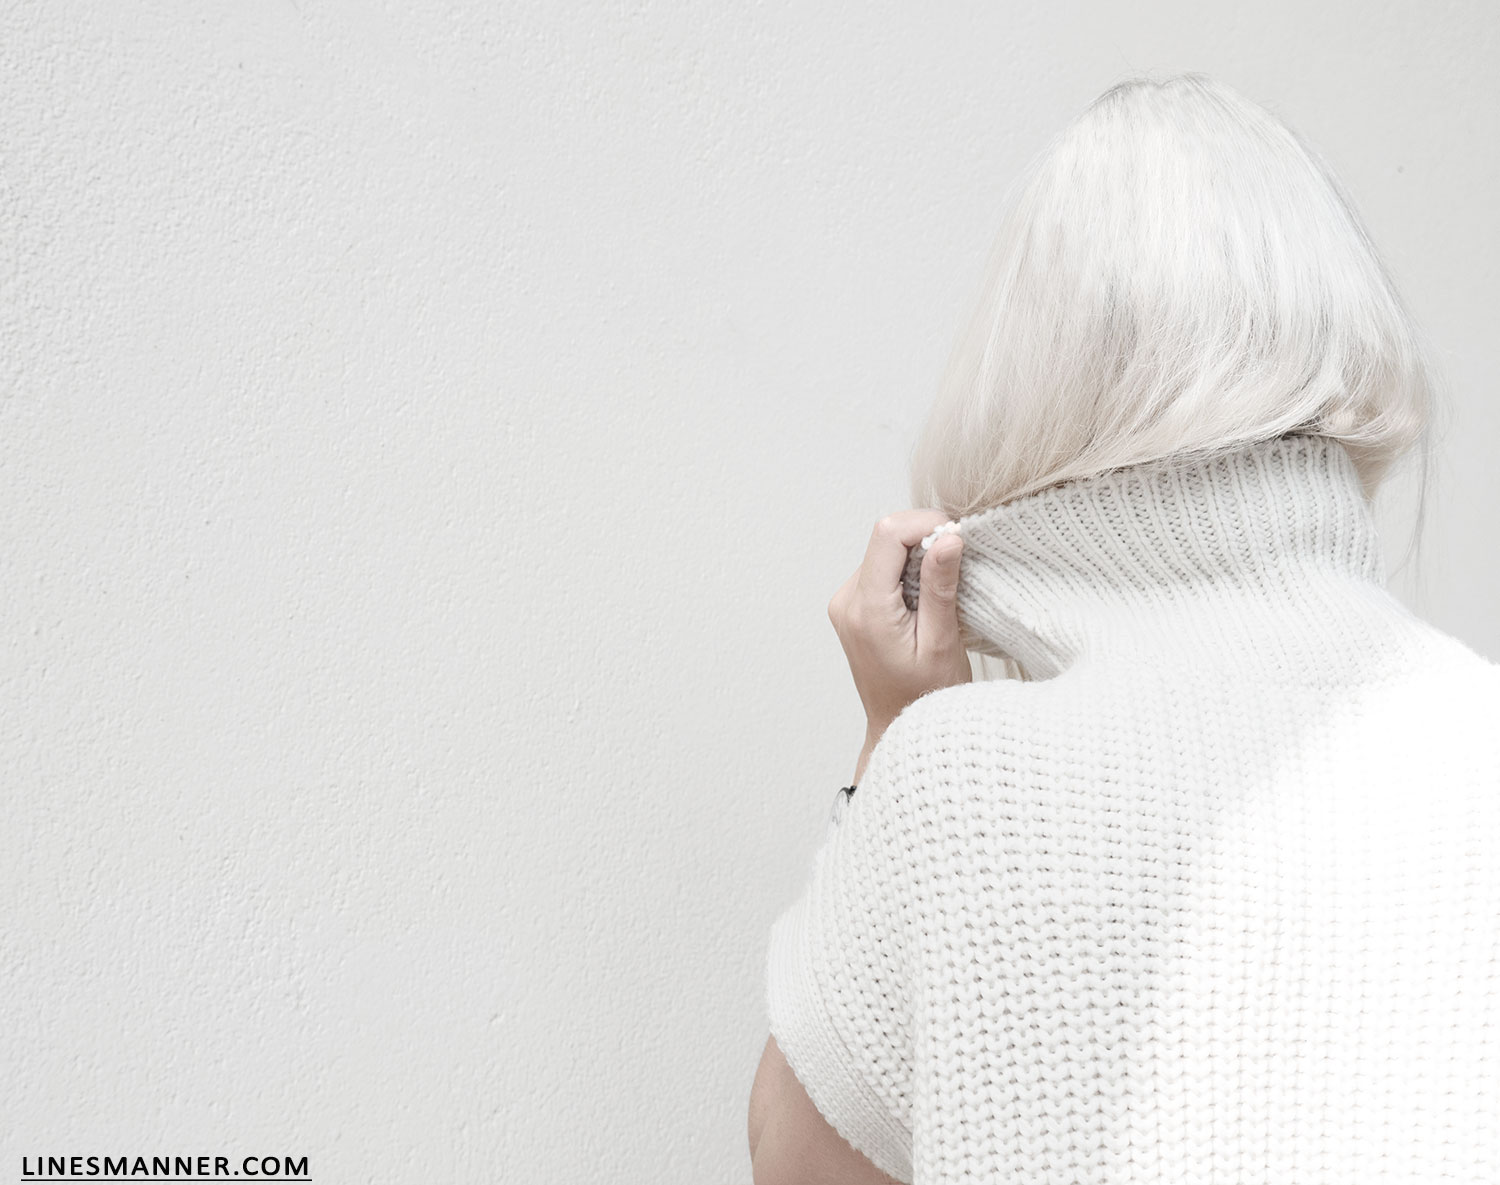 Lines-Manner-Sleeveless-Clean-Minimal-Effortless-Neutrals-Whiteout-Details-Essential-Staple-Statement_Piece-Knit-Sweater-Turtleneck-Trans_Seasonal-Larsson_And_Jennings-Warm-7